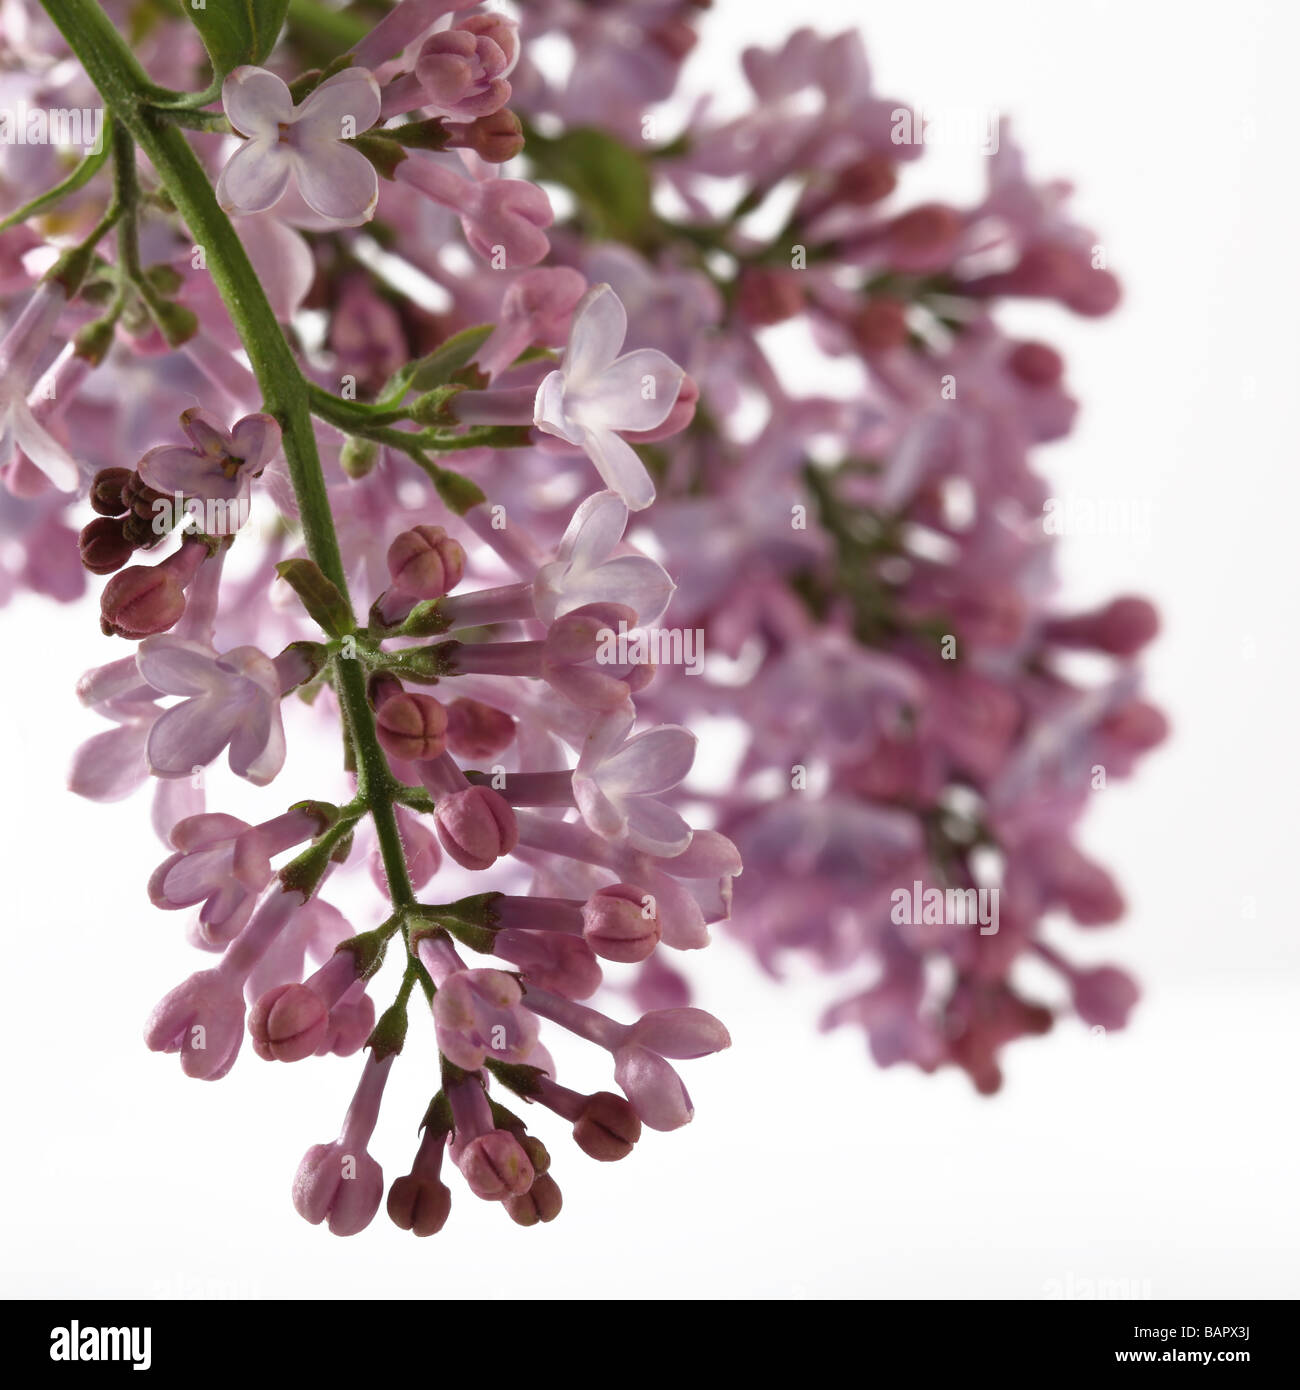 Lilac sprig on a white background - Stock Image